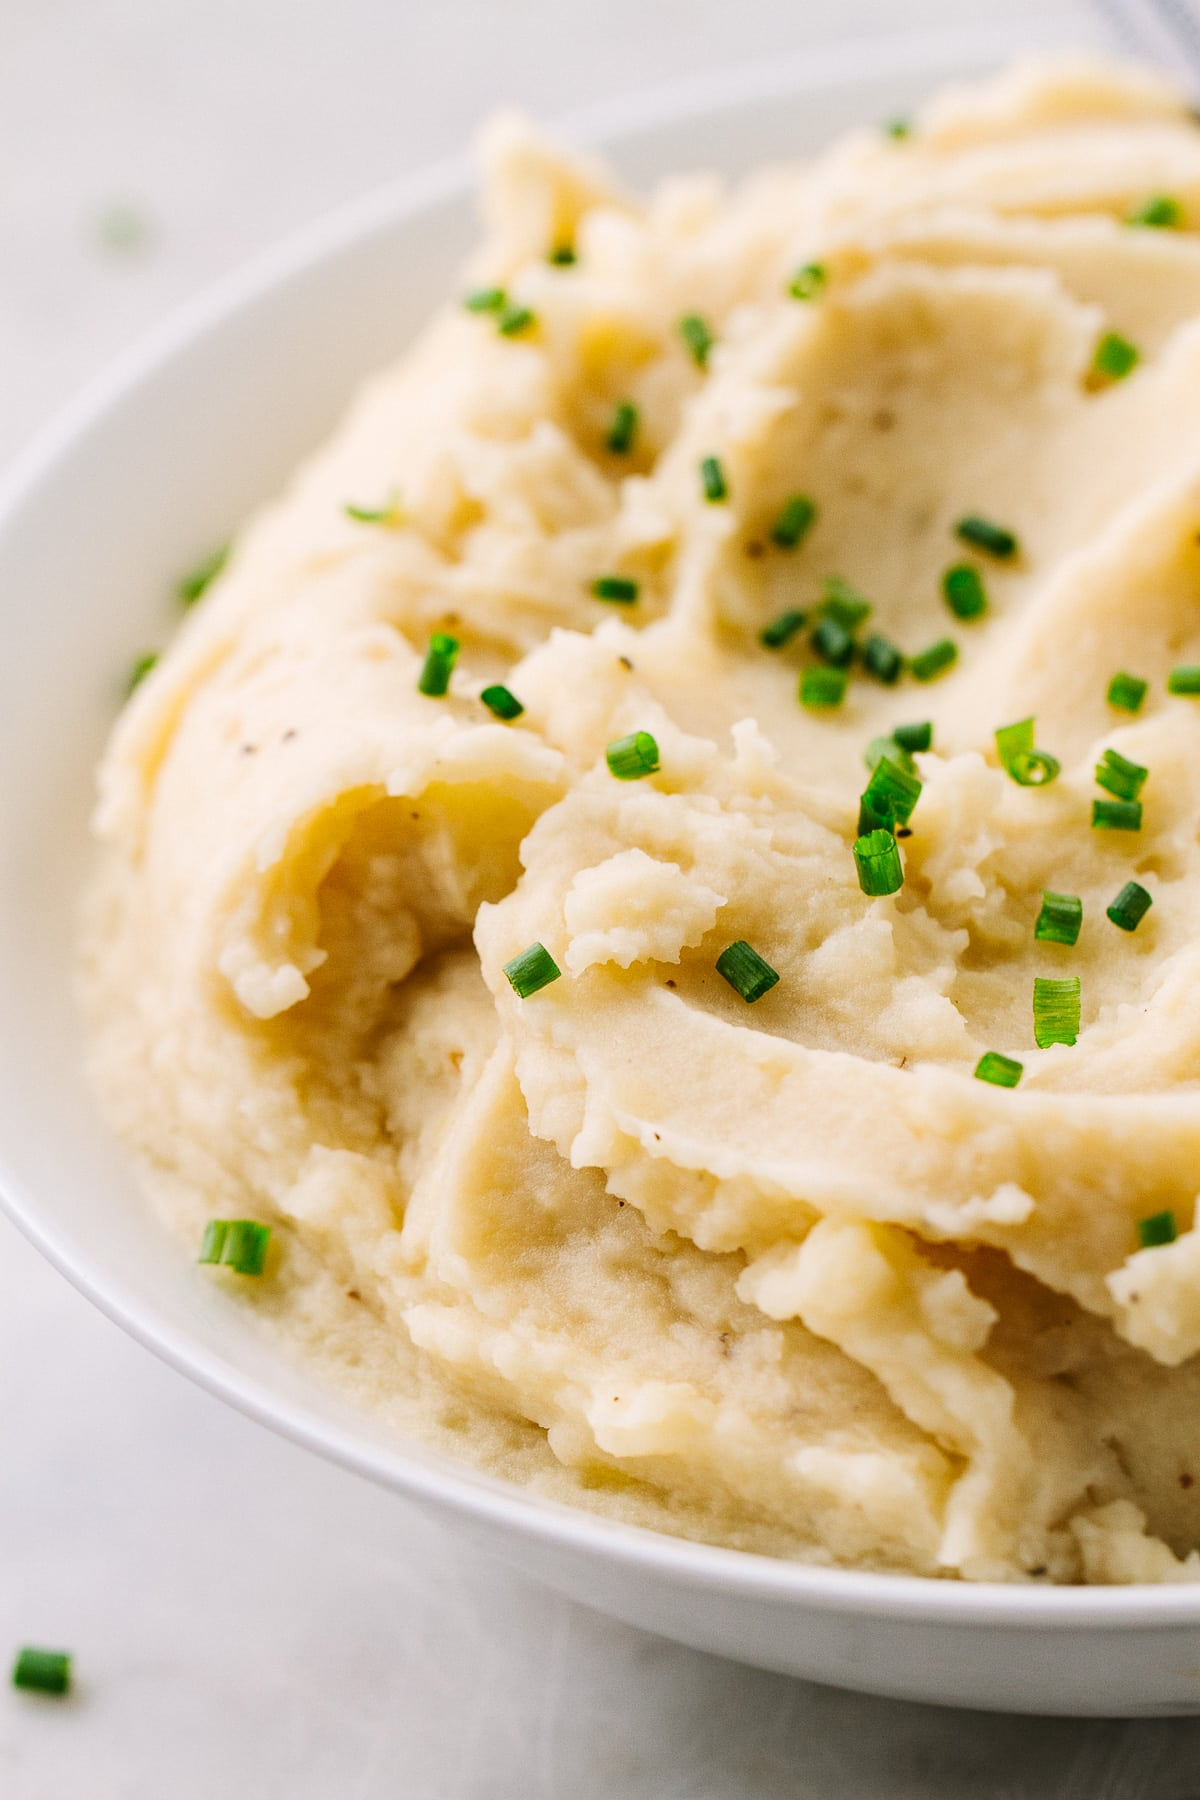 side angle view of instant pot vegan mashed potatoes in a bowl with chopped chives on top.